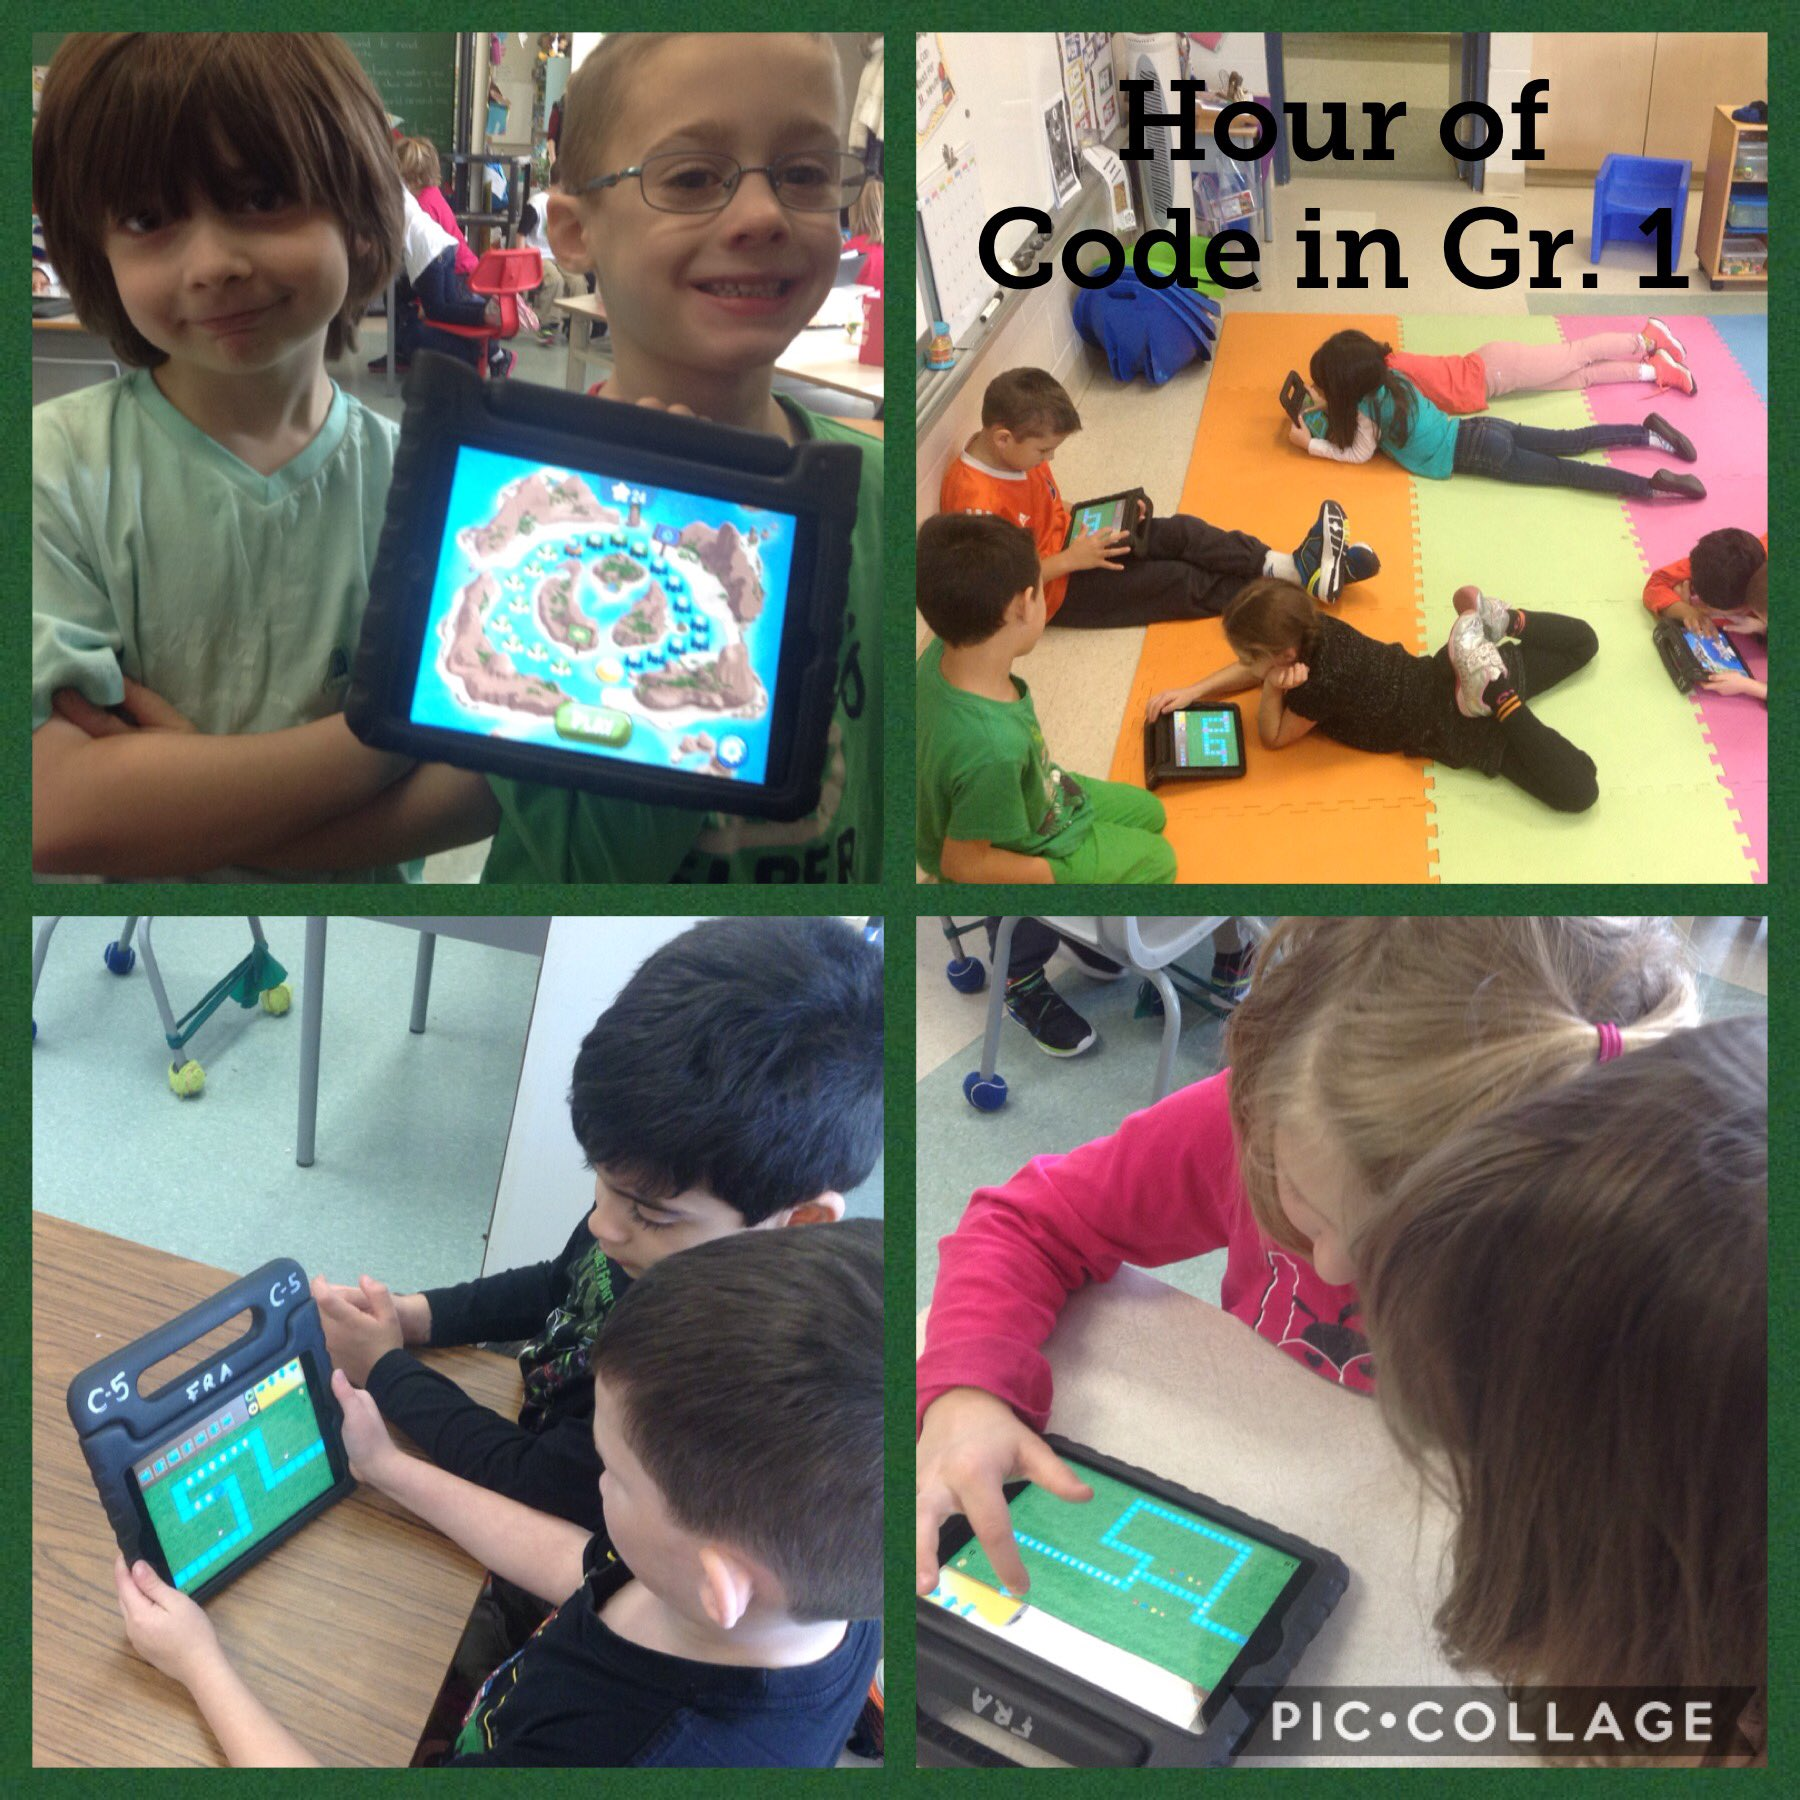 Hour of Code in grade 1. A lot of fun learning. #ocsb @FRAAssisiSchool #ontariocodes @boxislandgame @kodeable @PlayTheFoos https://t.co/zH82bXqeqQ